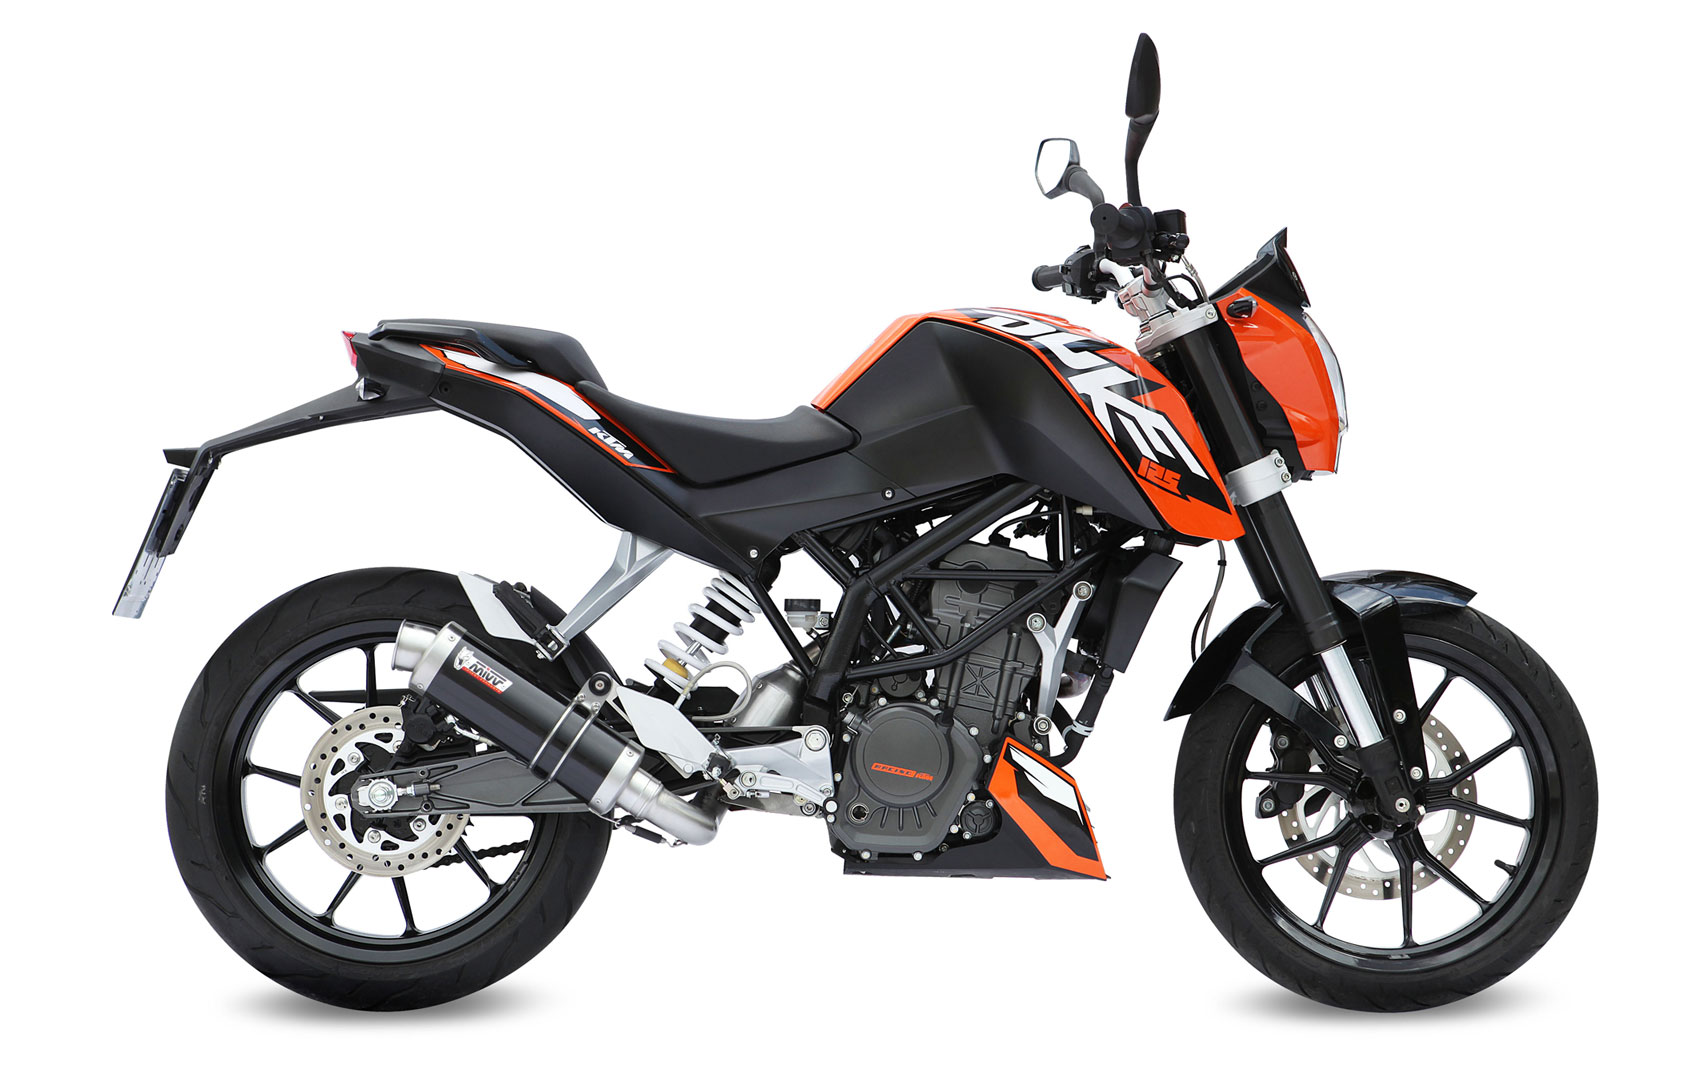 new mivv exhausts for ktm duke 125 and 200 visordown. Black Bedroom Furniture Sets. Home Design Ideas